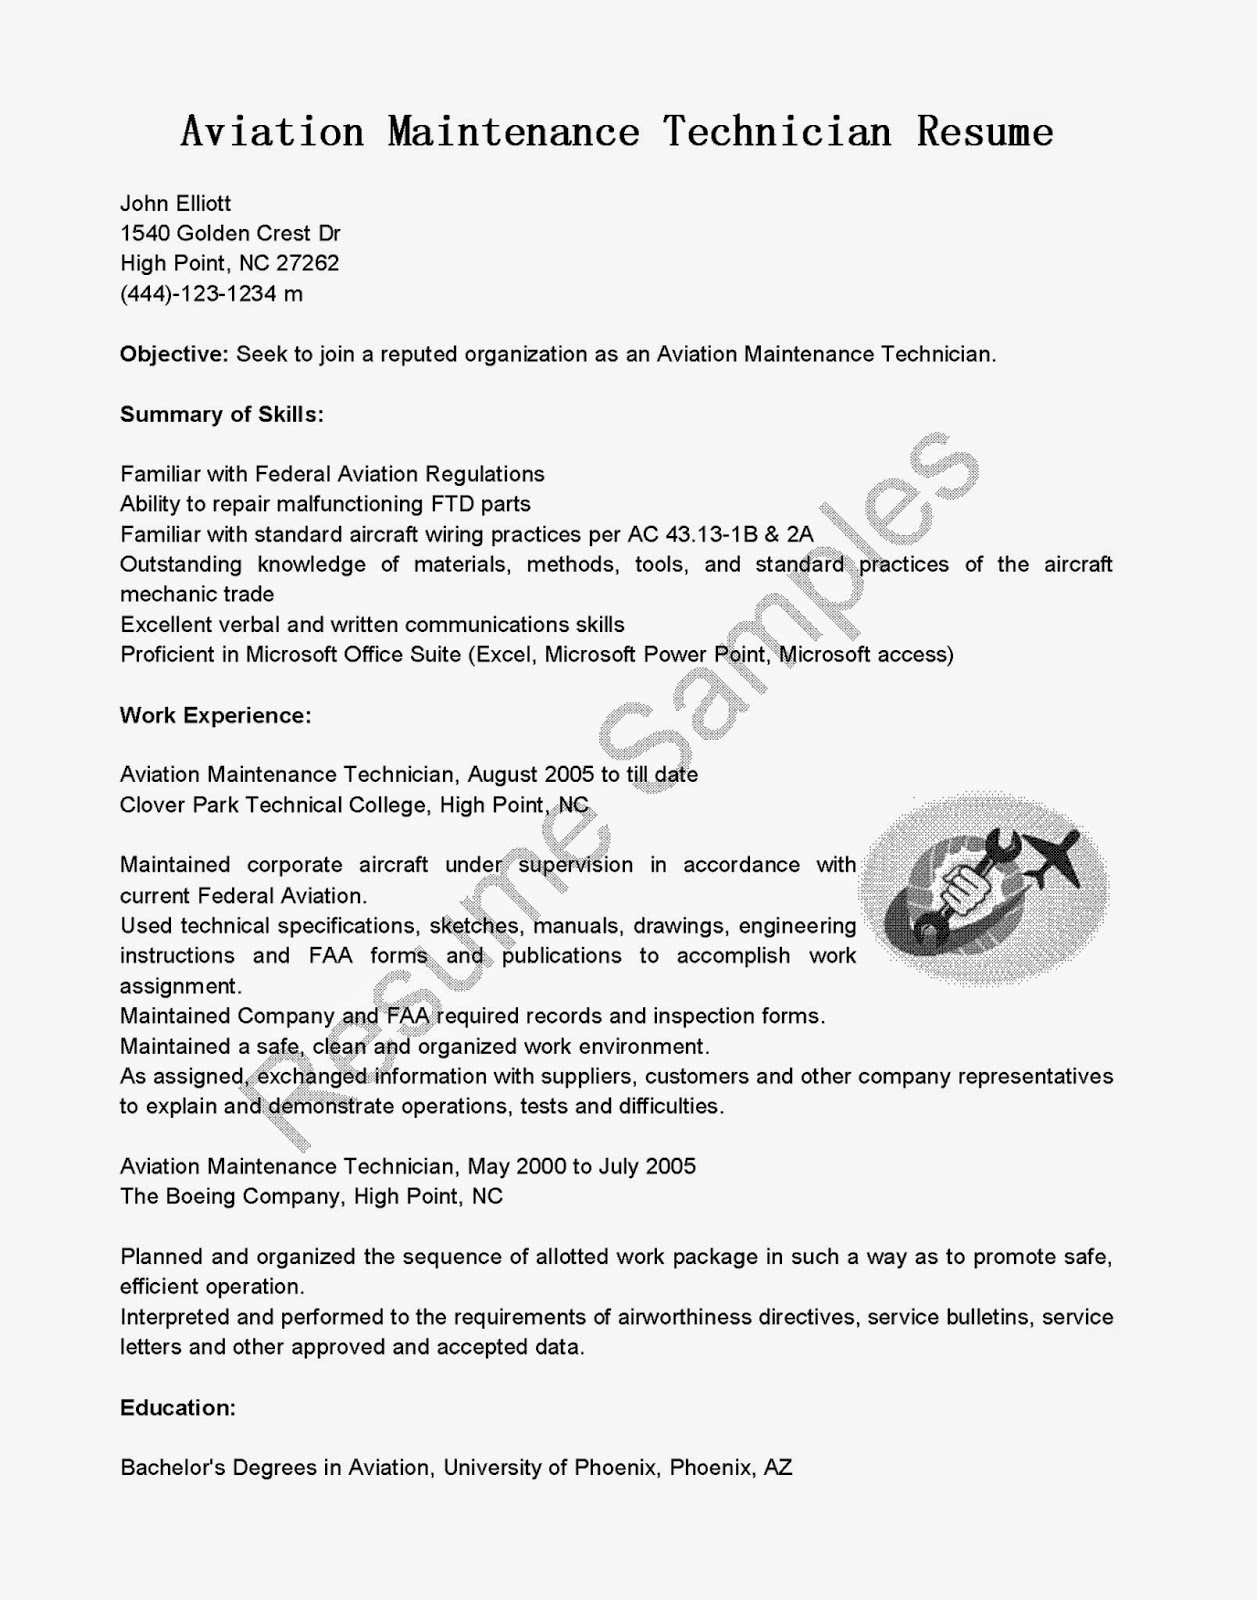 Model Resume Format Airline Pilot Resume Template Targeted Promo Pilot  Resume Pdf Blank Templates Accounting Assistant